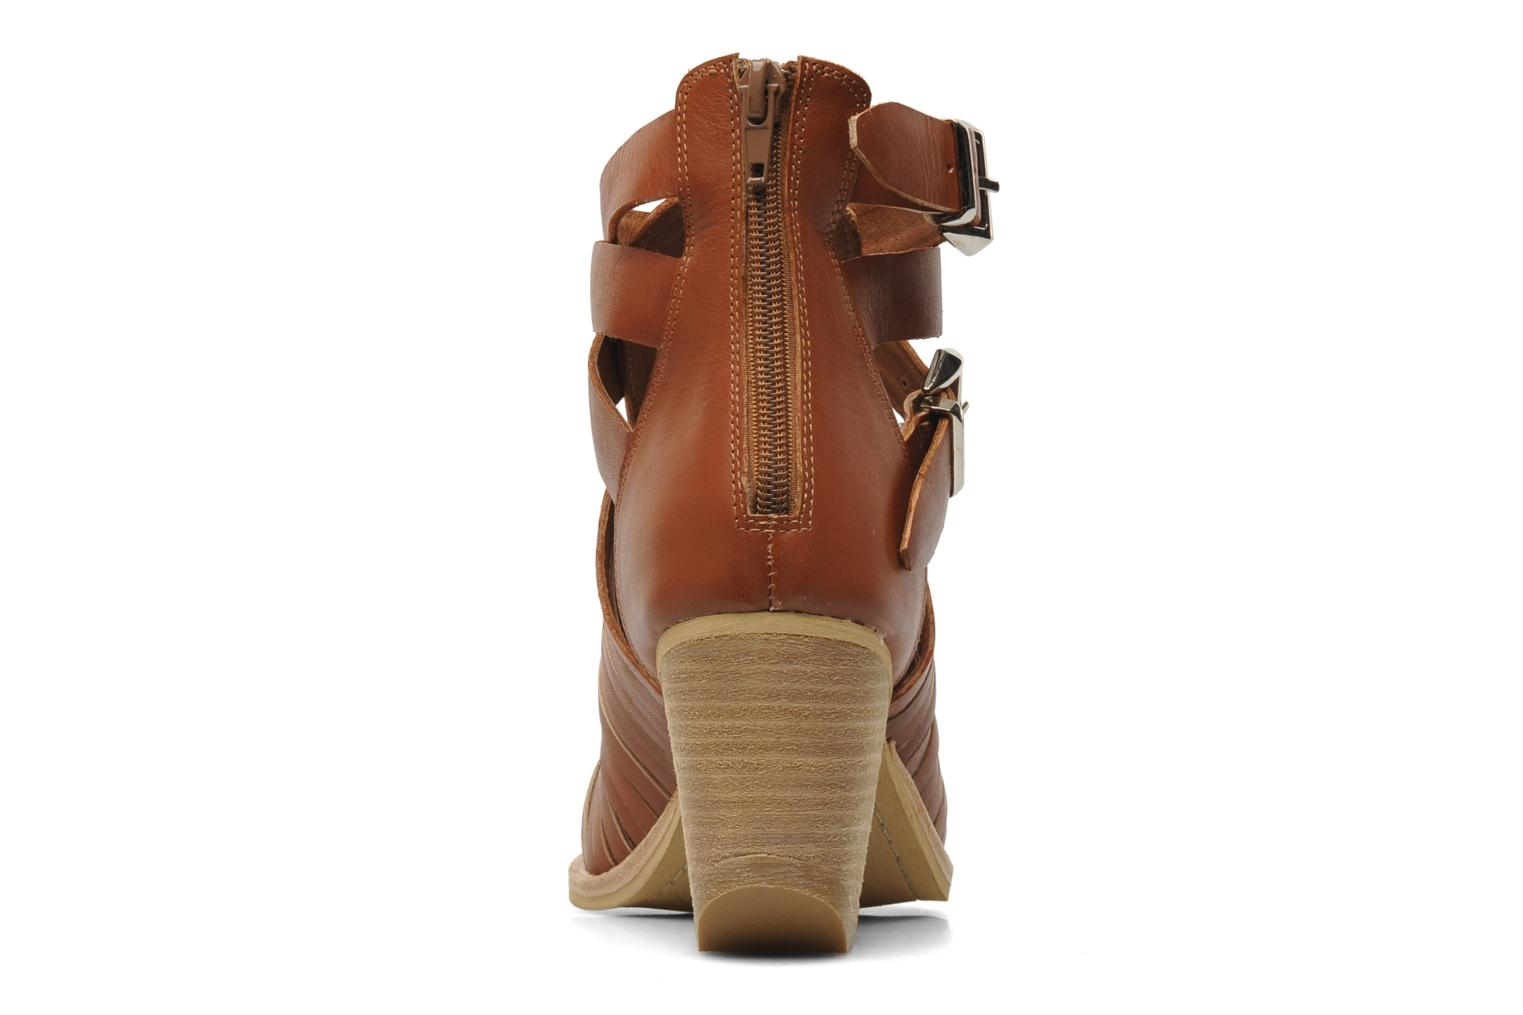 Sewell Tan Cow Leather